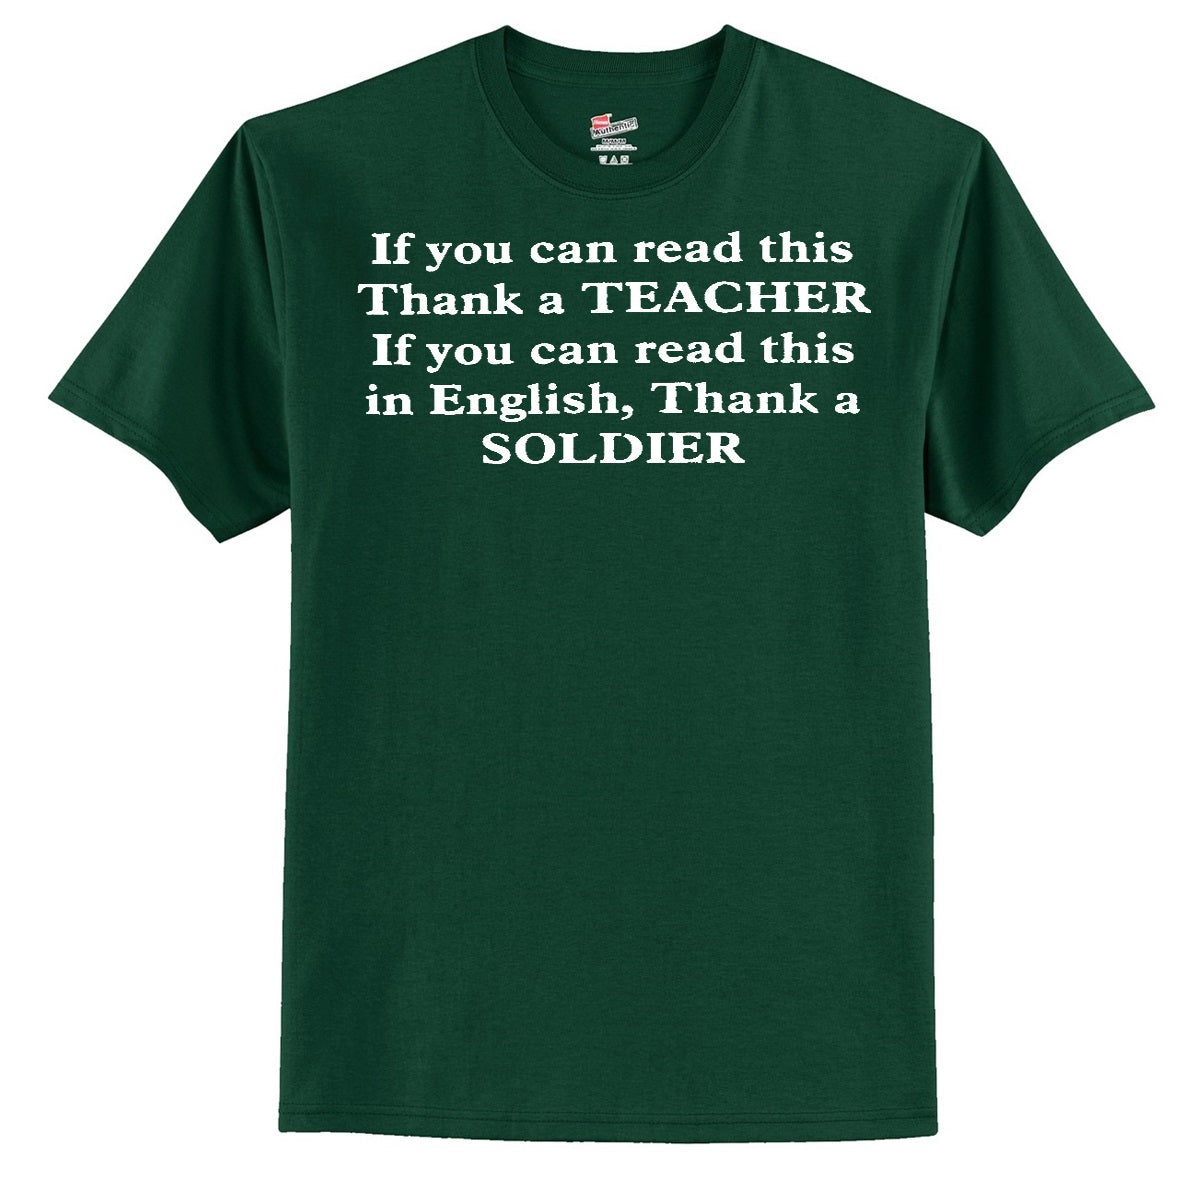 If You Can Read This Thank A Teacher - If You Can Read This In English Thank A Soldier T-Shirt